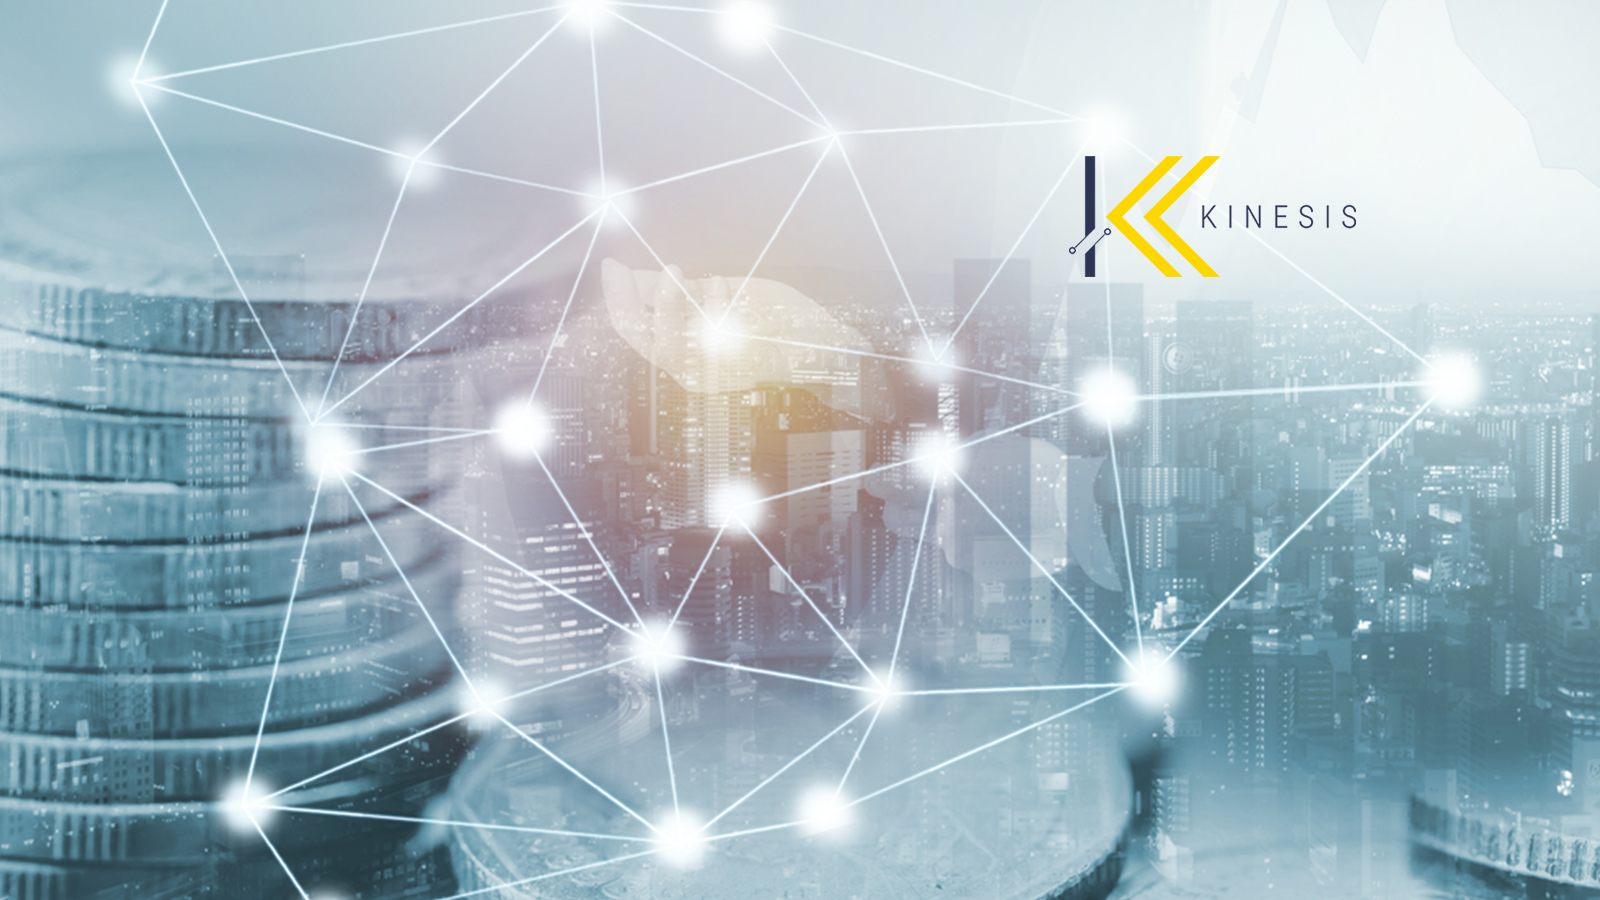 Kinesis Money And Allocated Bullion Exchange Explore Creating A Joint Commercial Blockchain Venture With Jakarta Futures